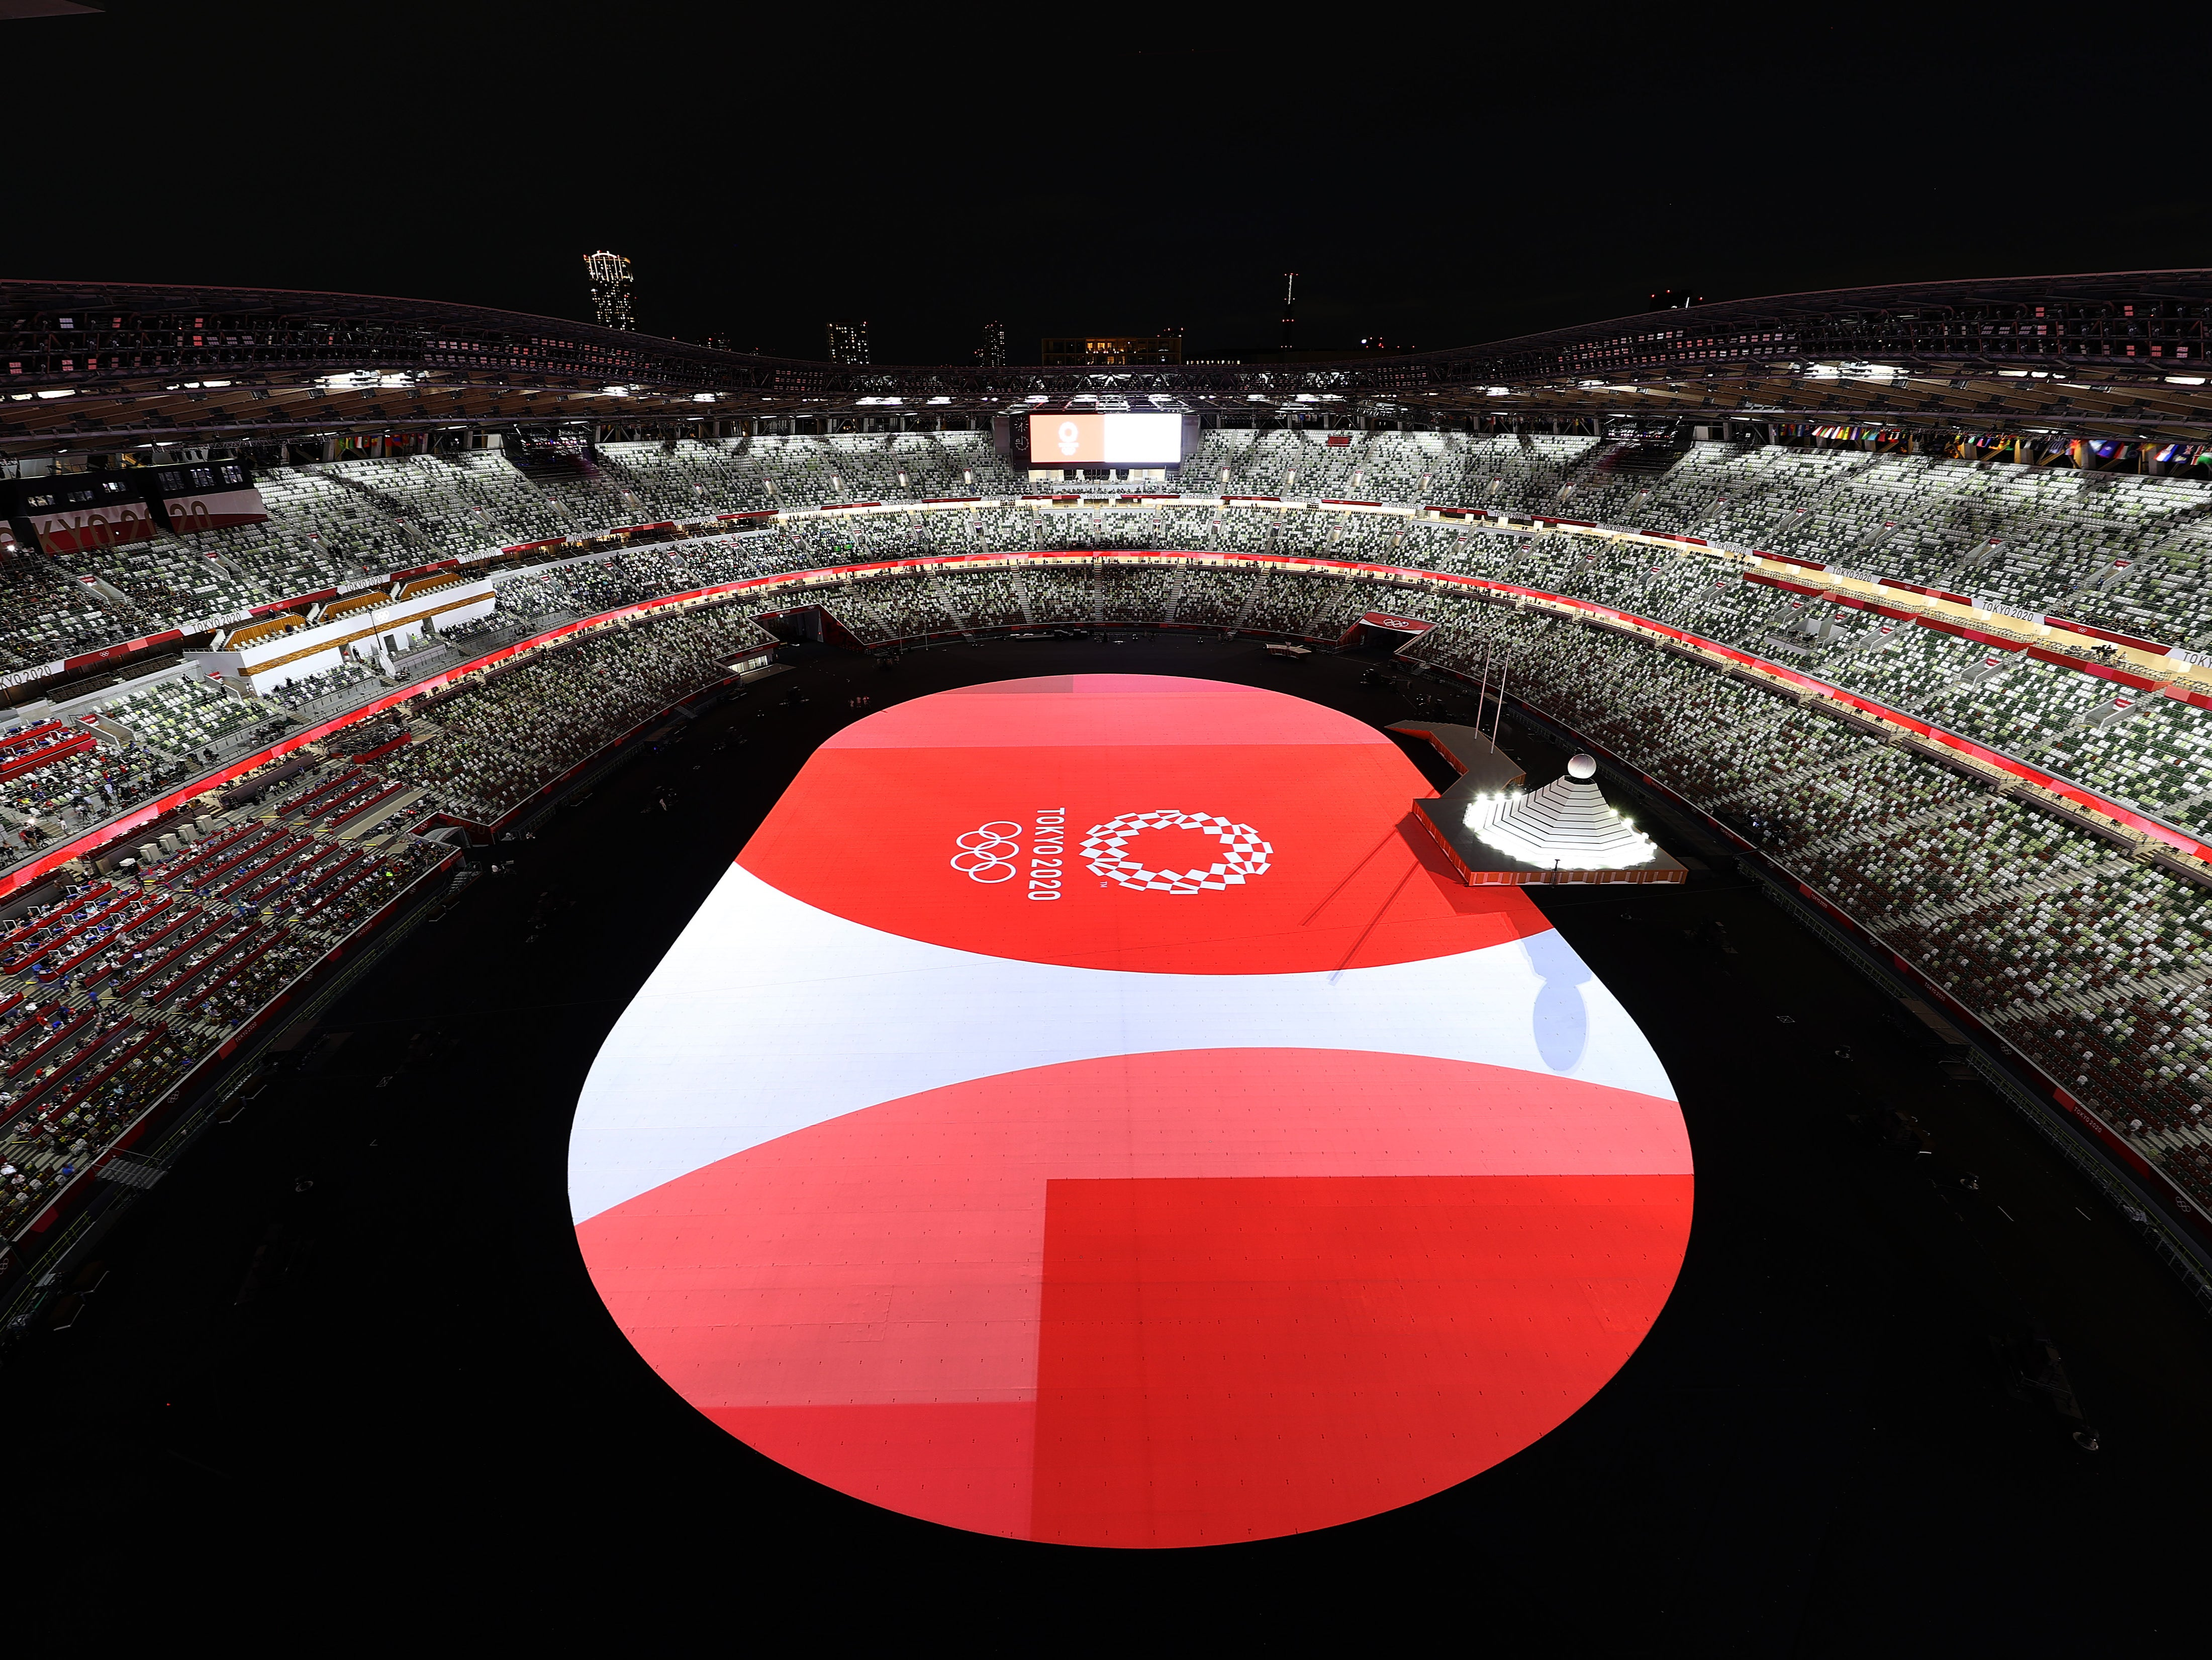 independent.co.uk - Kate Ng - Everything you need to know about sustainability at Tokyo Olympics 2020